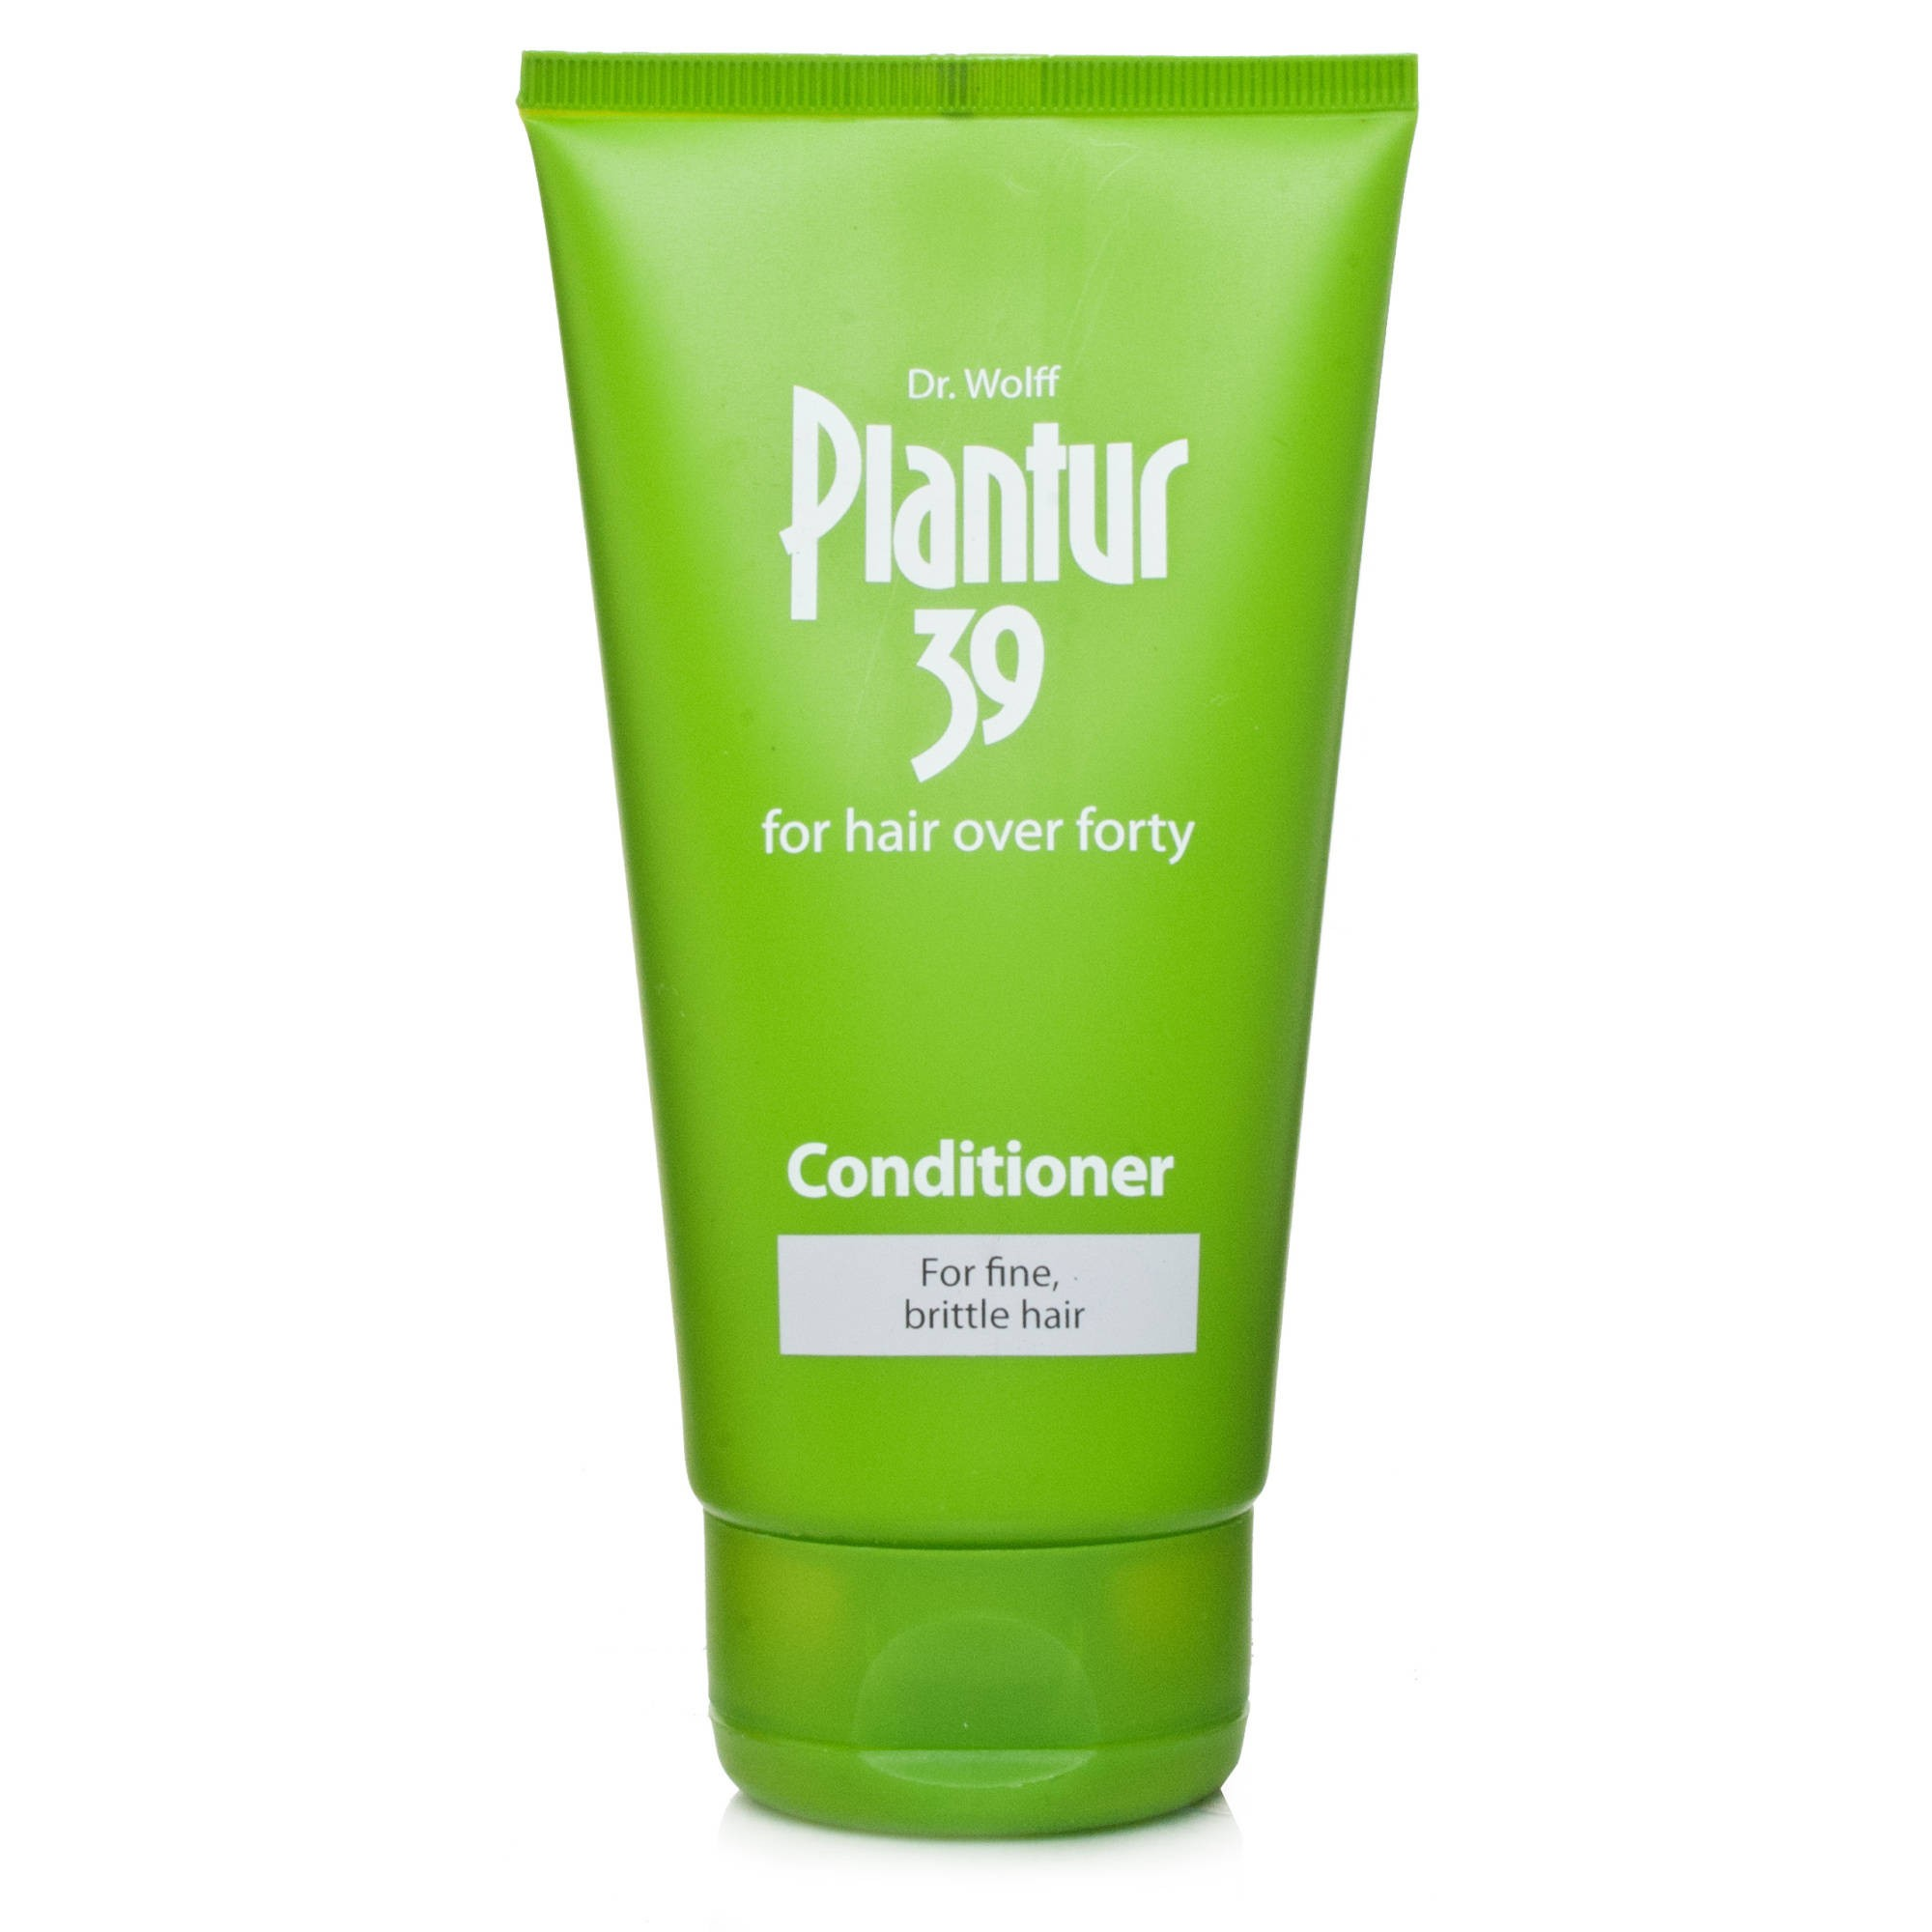 Plantur 39 Conditioner For Fine/Brittle Hair